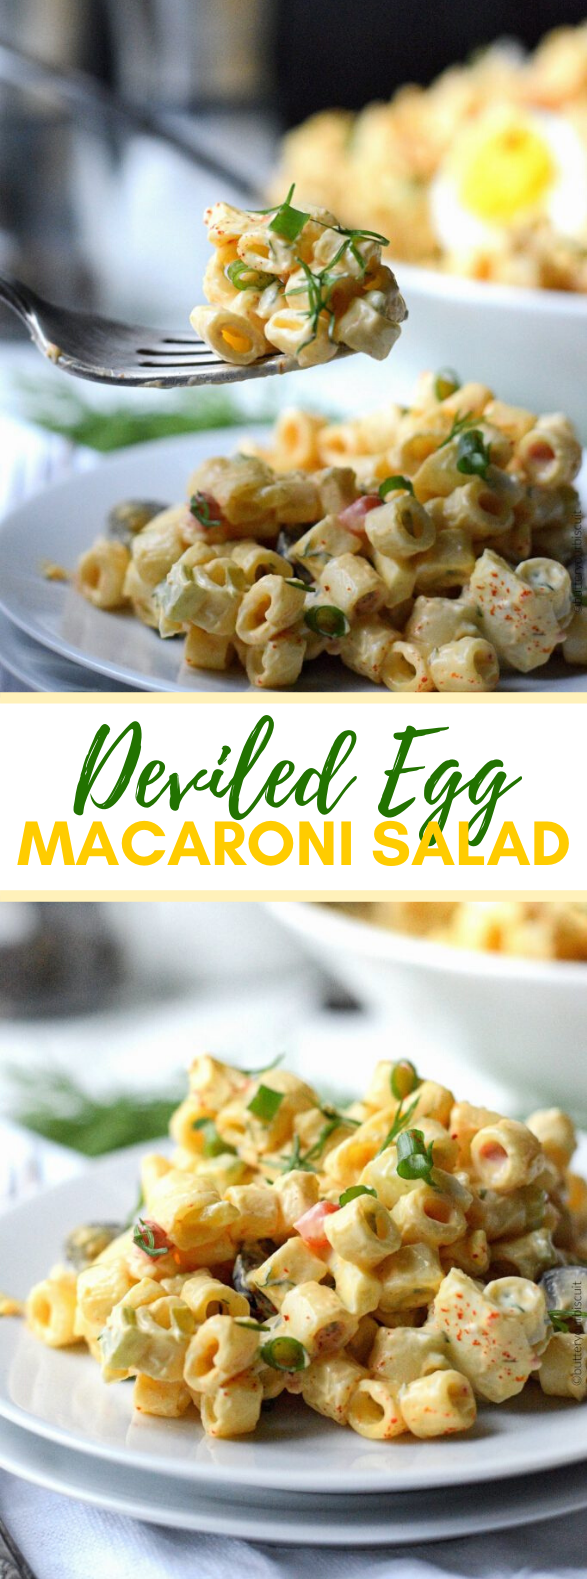 DEVILED EGG MACARONI SALAD #meals #dinner